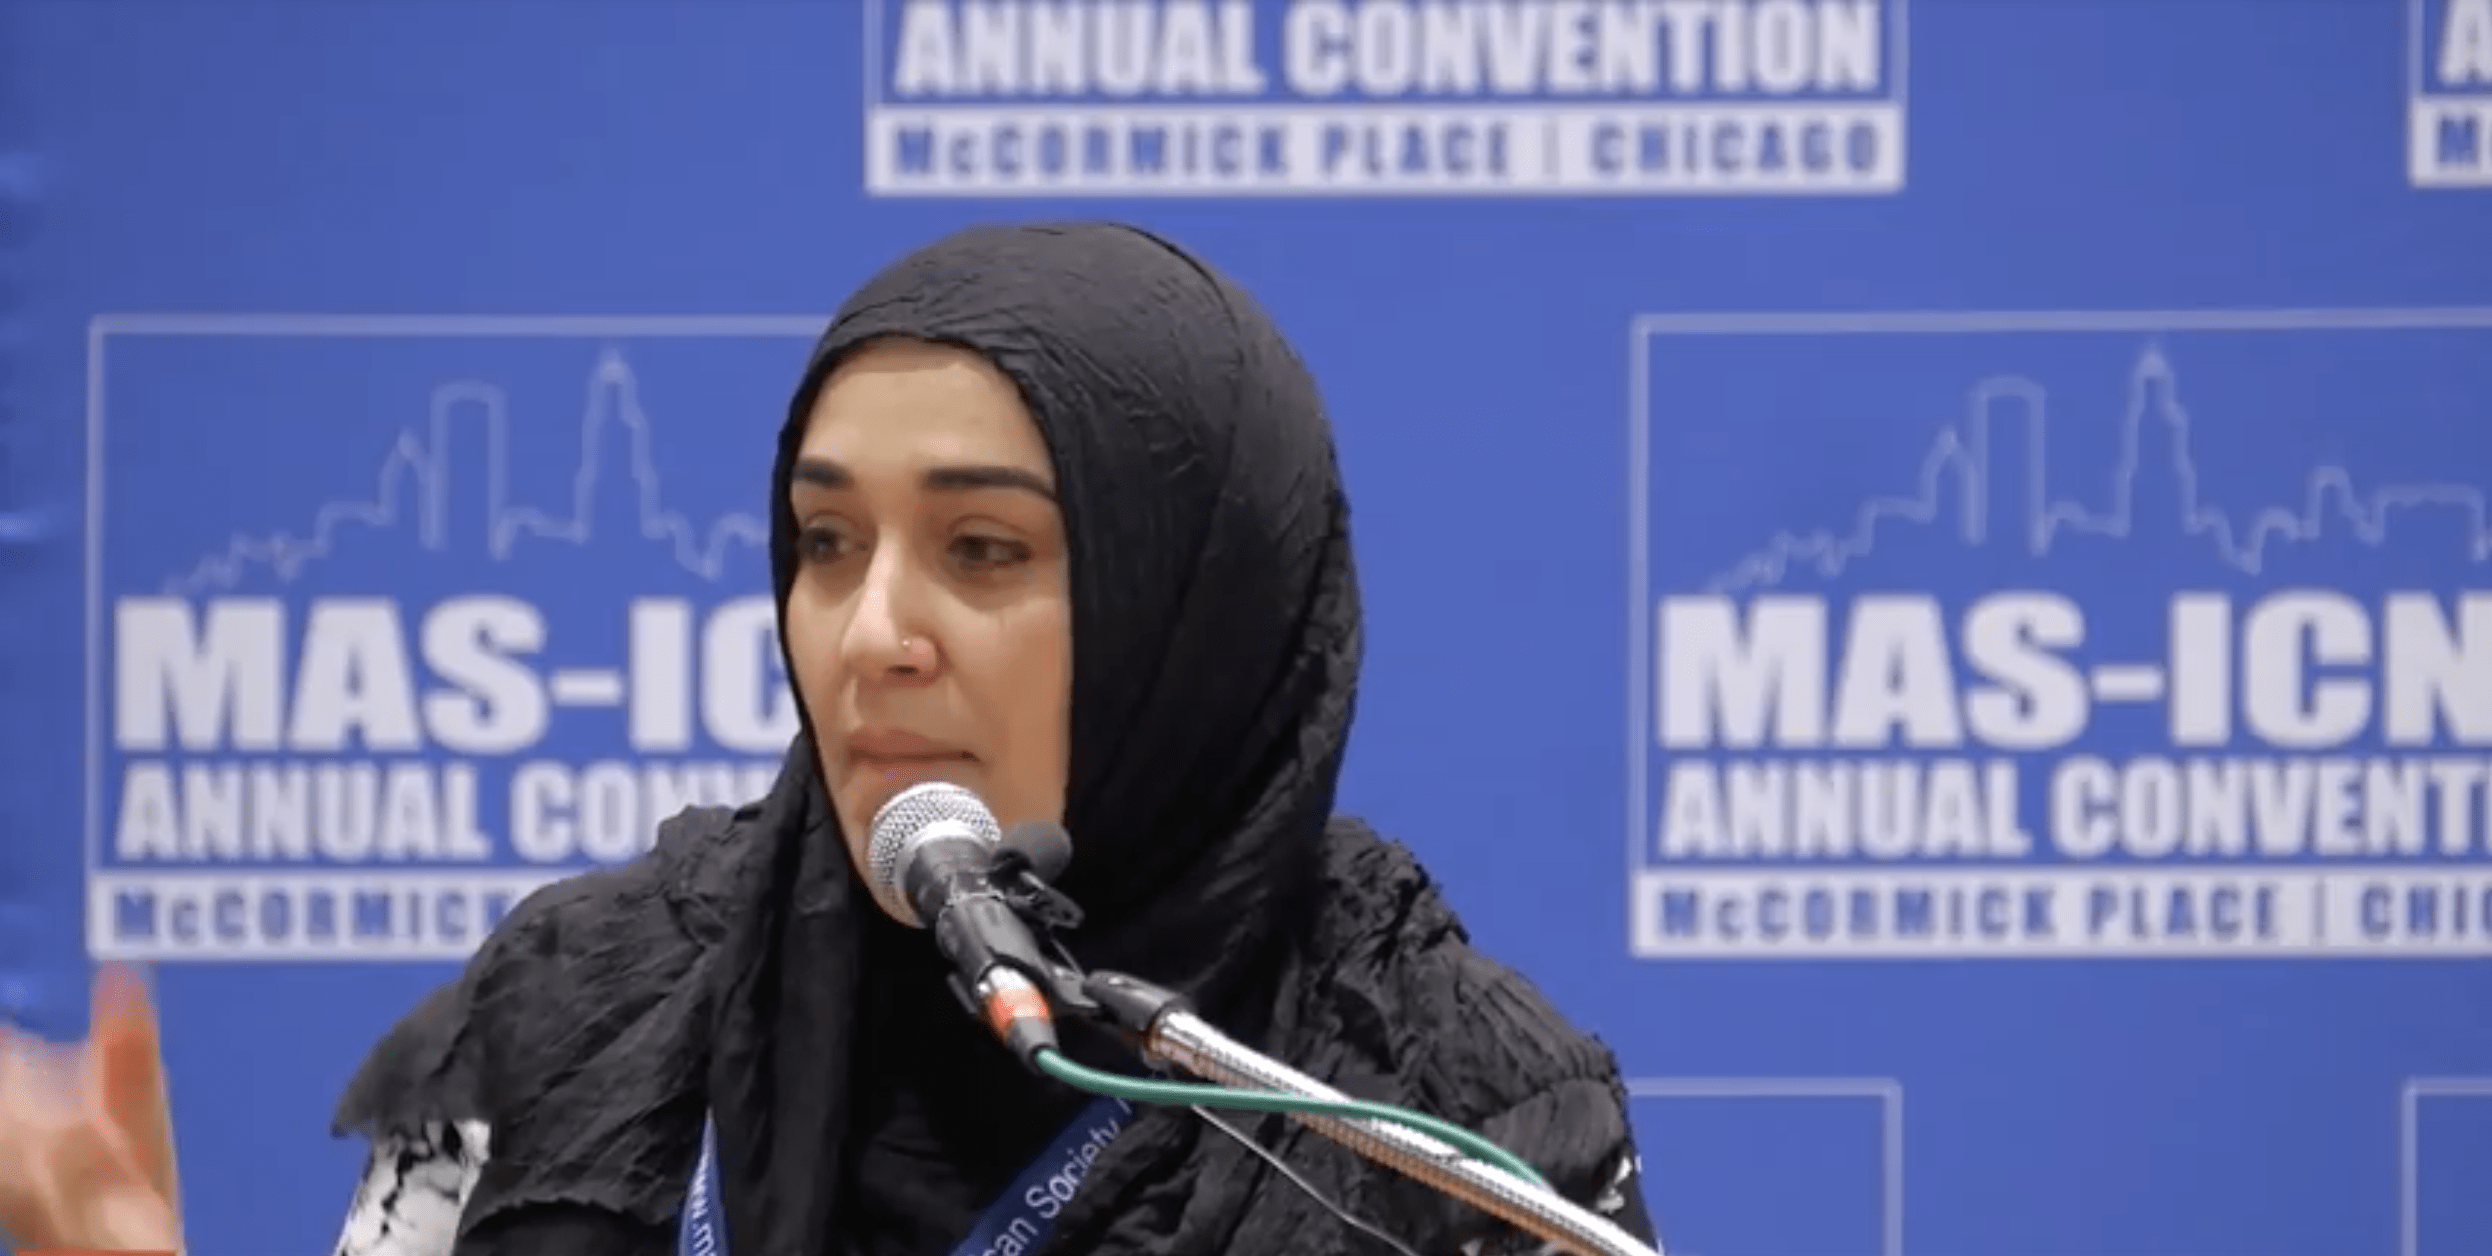 Yasmin Mogahed – A Look in the Mirror